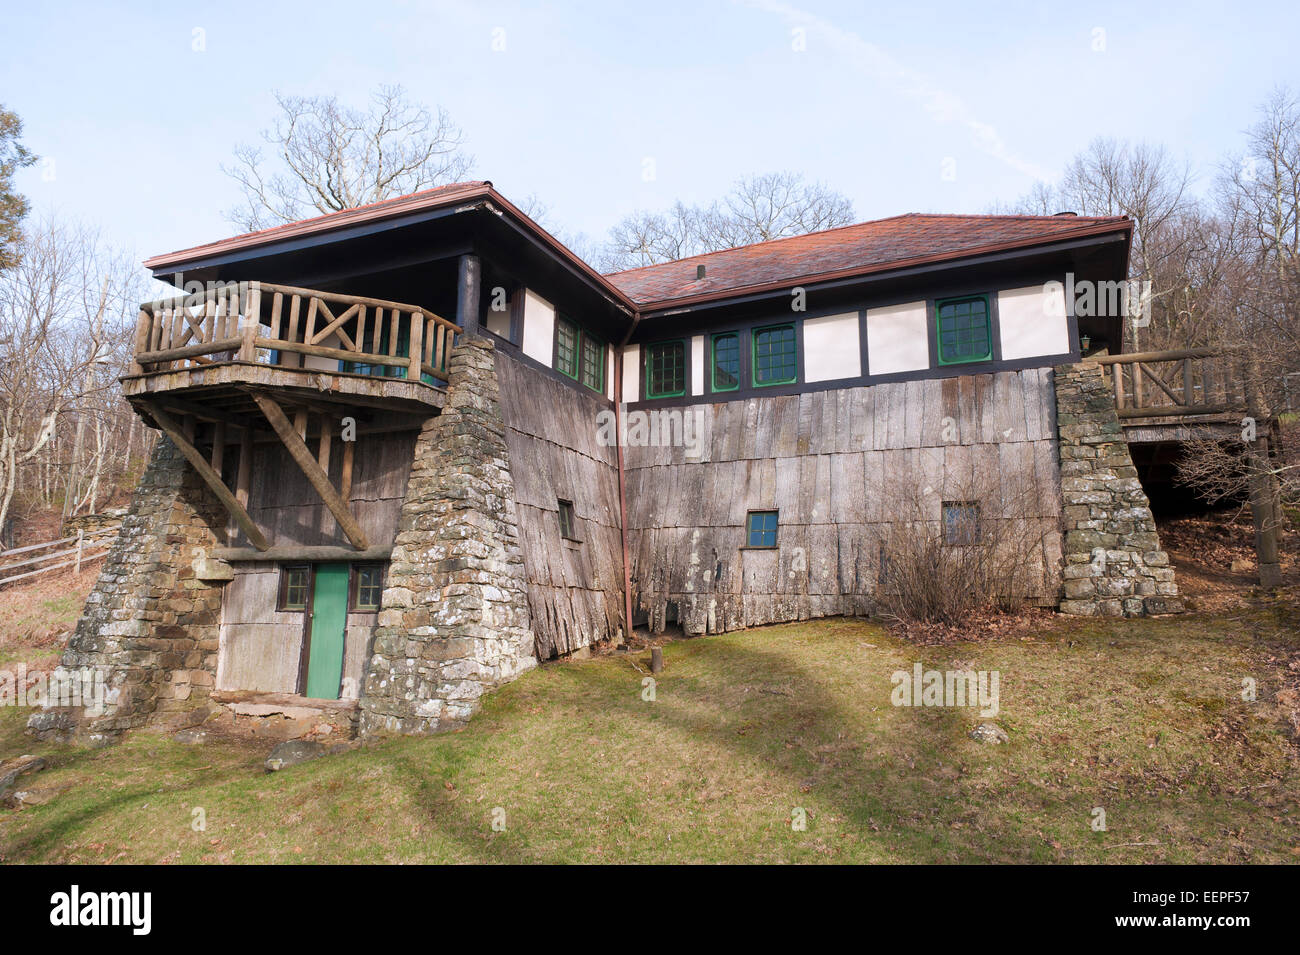 Massanutten lodge at Skyland Resort, in the Blue Ridge Mountains of Virginia. Stock Photo